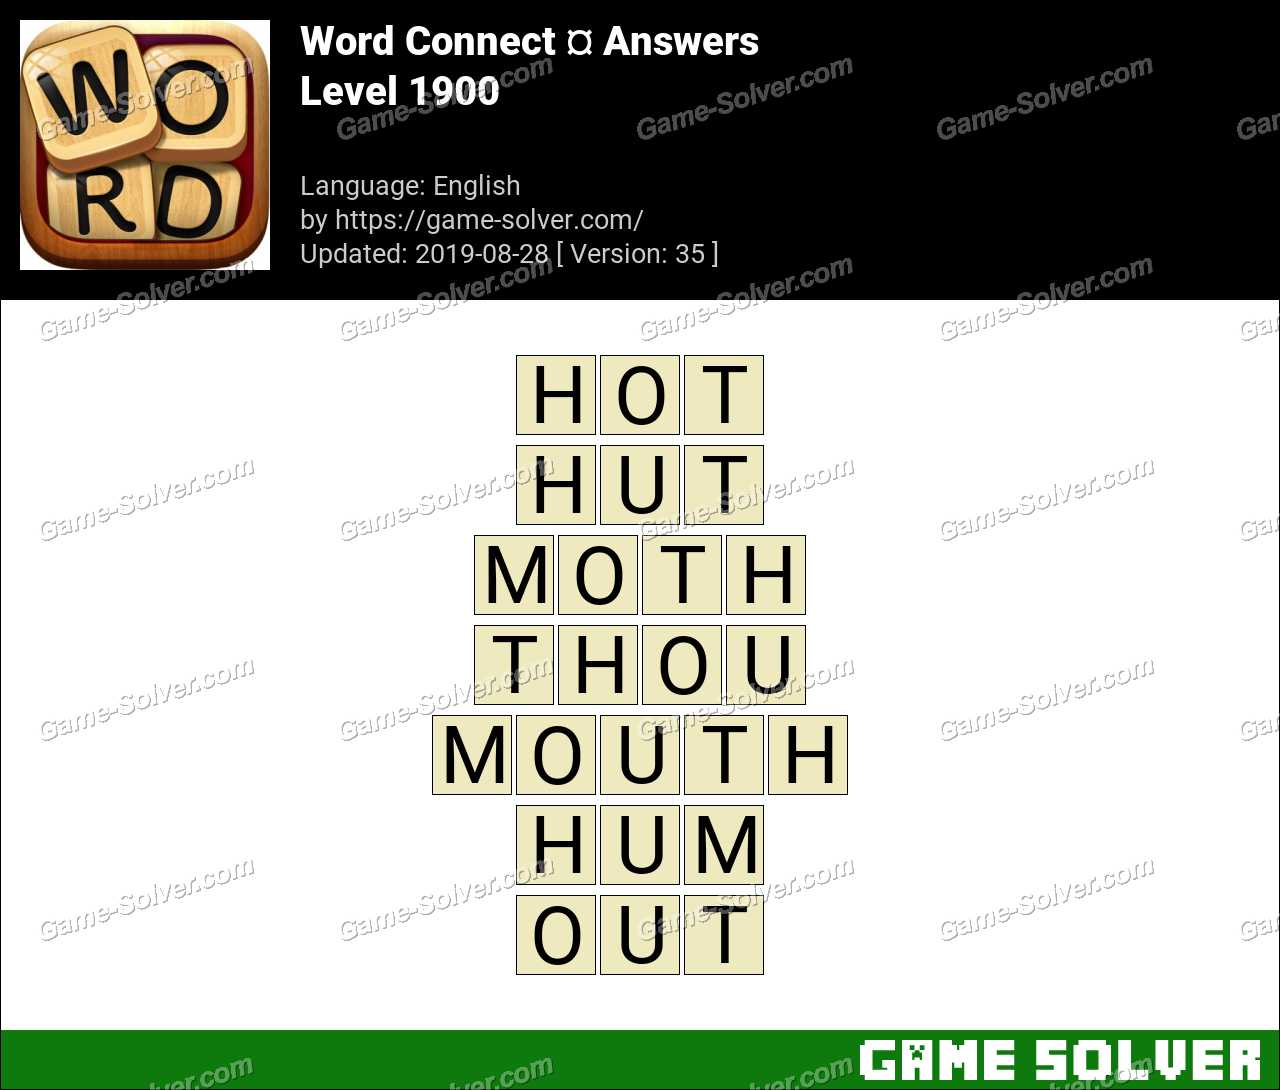 Word Connect Level 1900 Answers